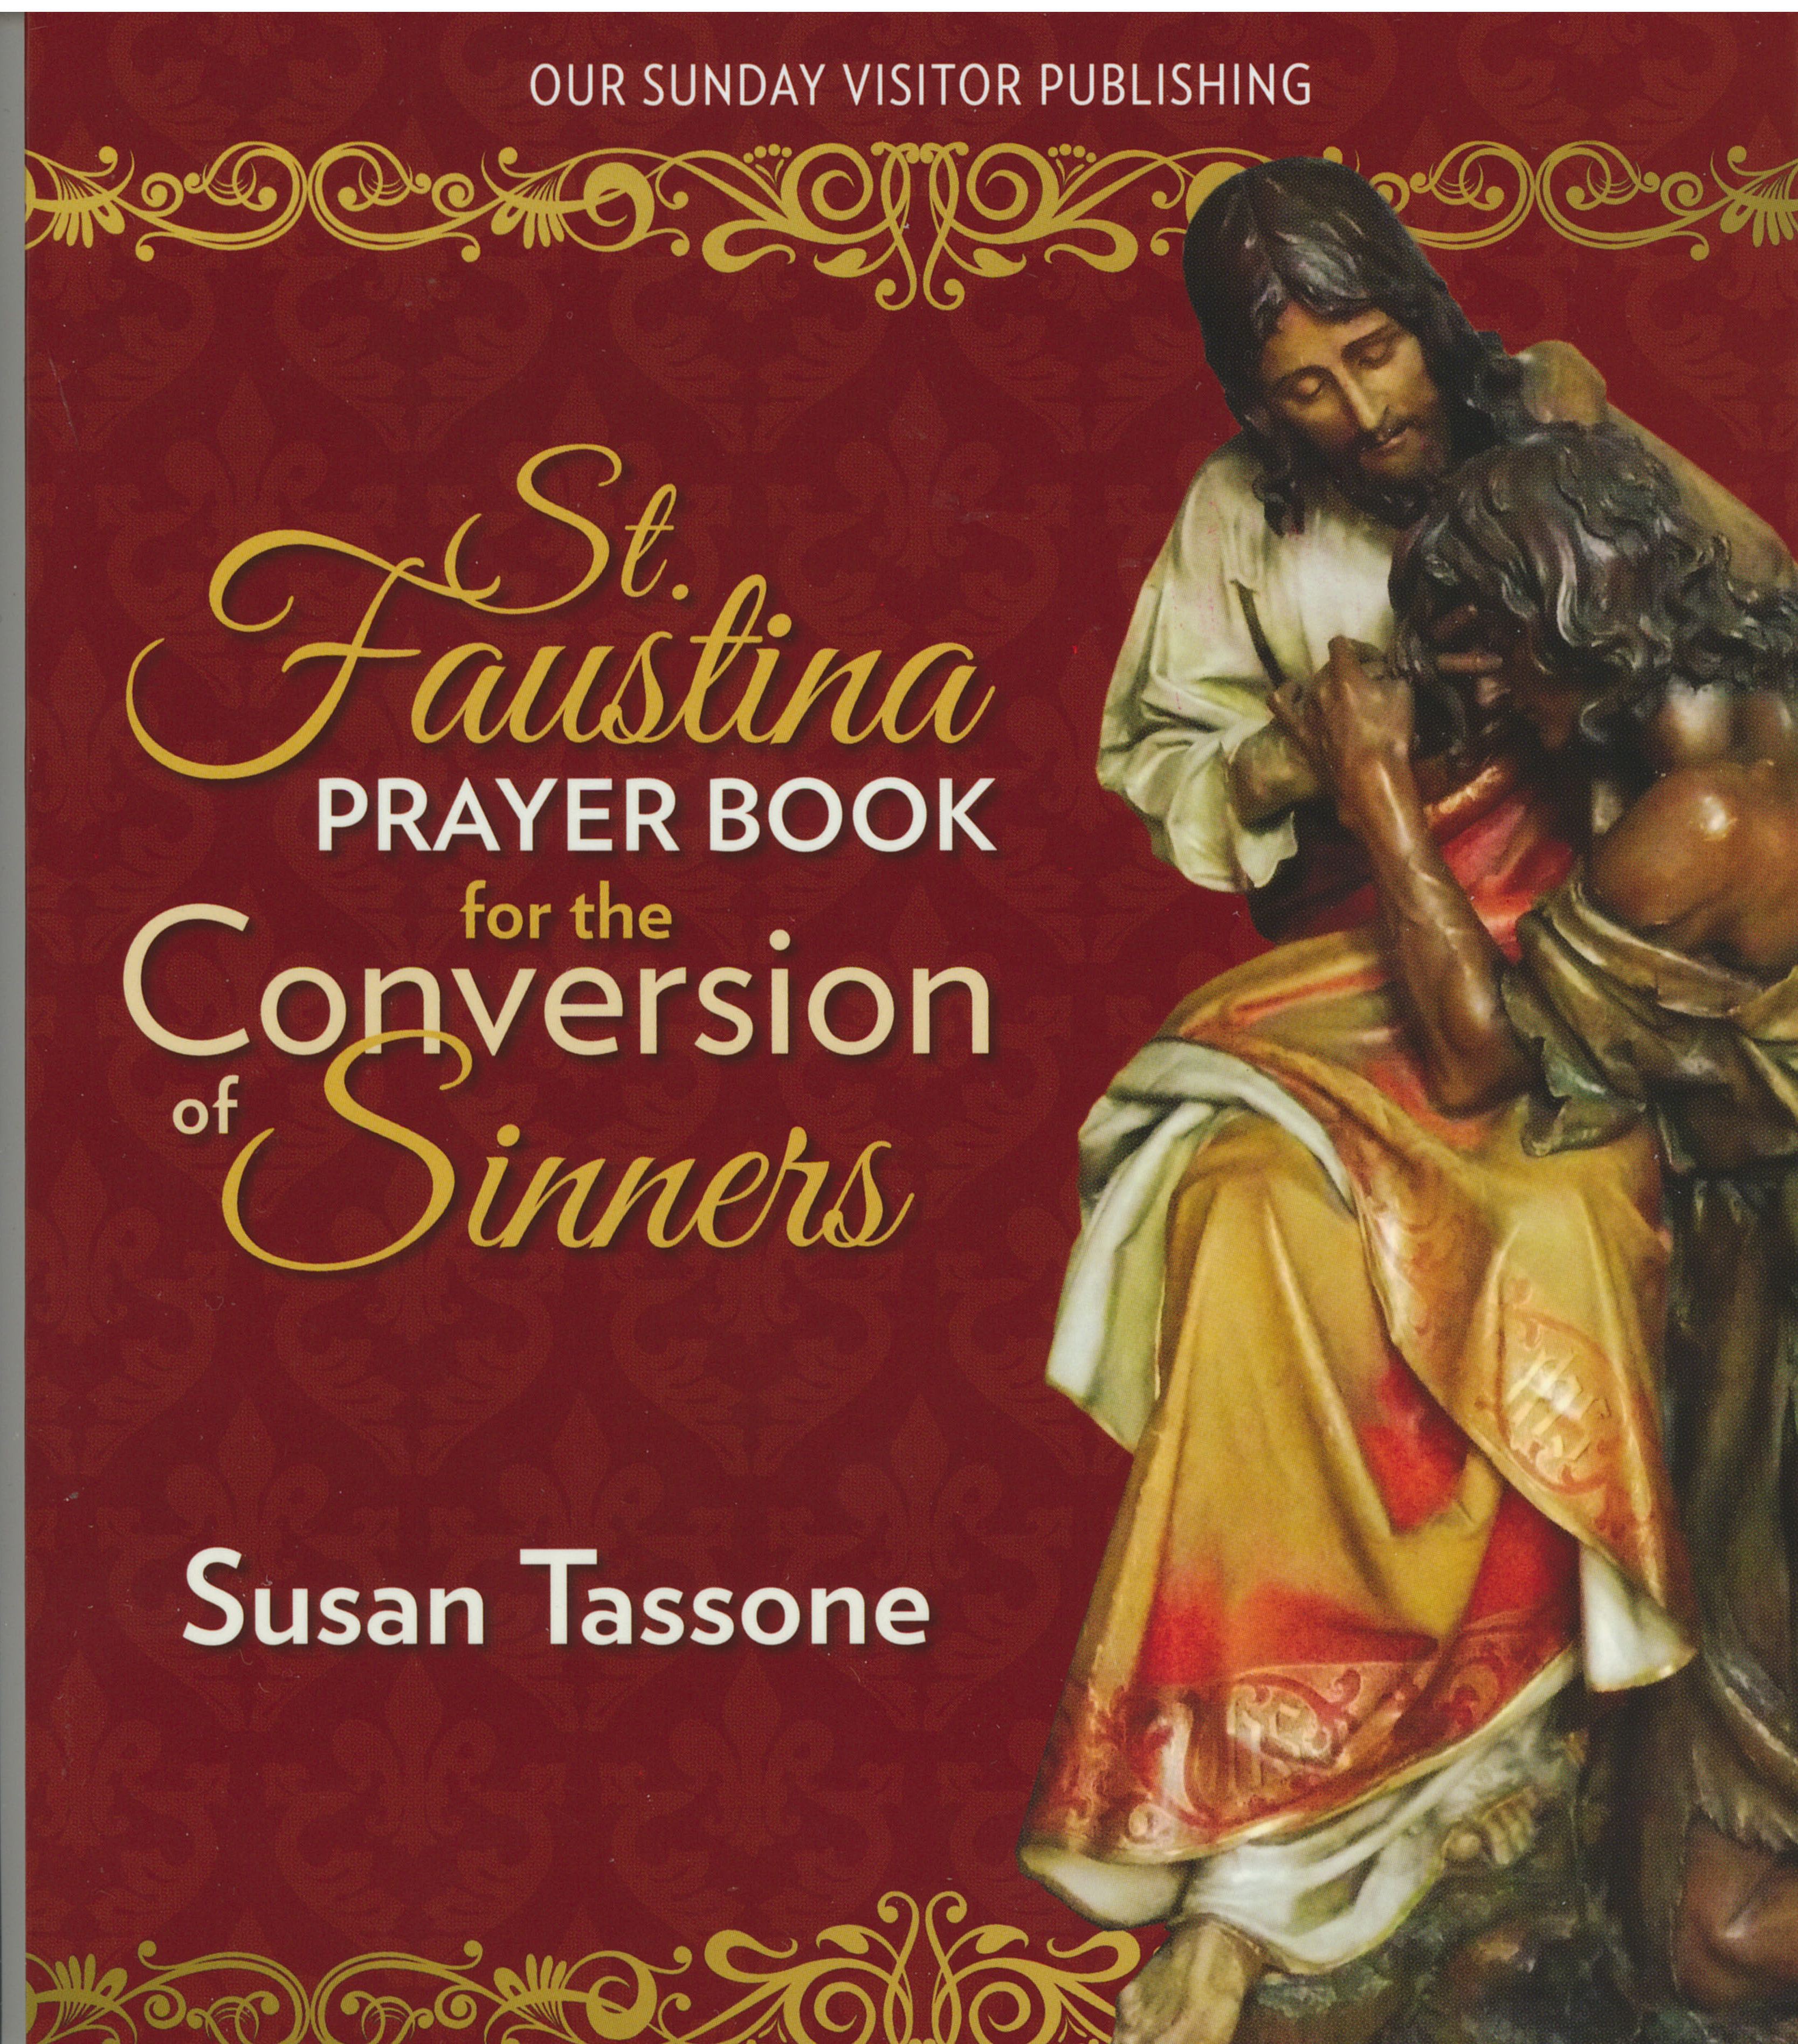 St. Faustina Prayerbook for the Conversion of Sinners by Susan Tassone 108-9781681920665